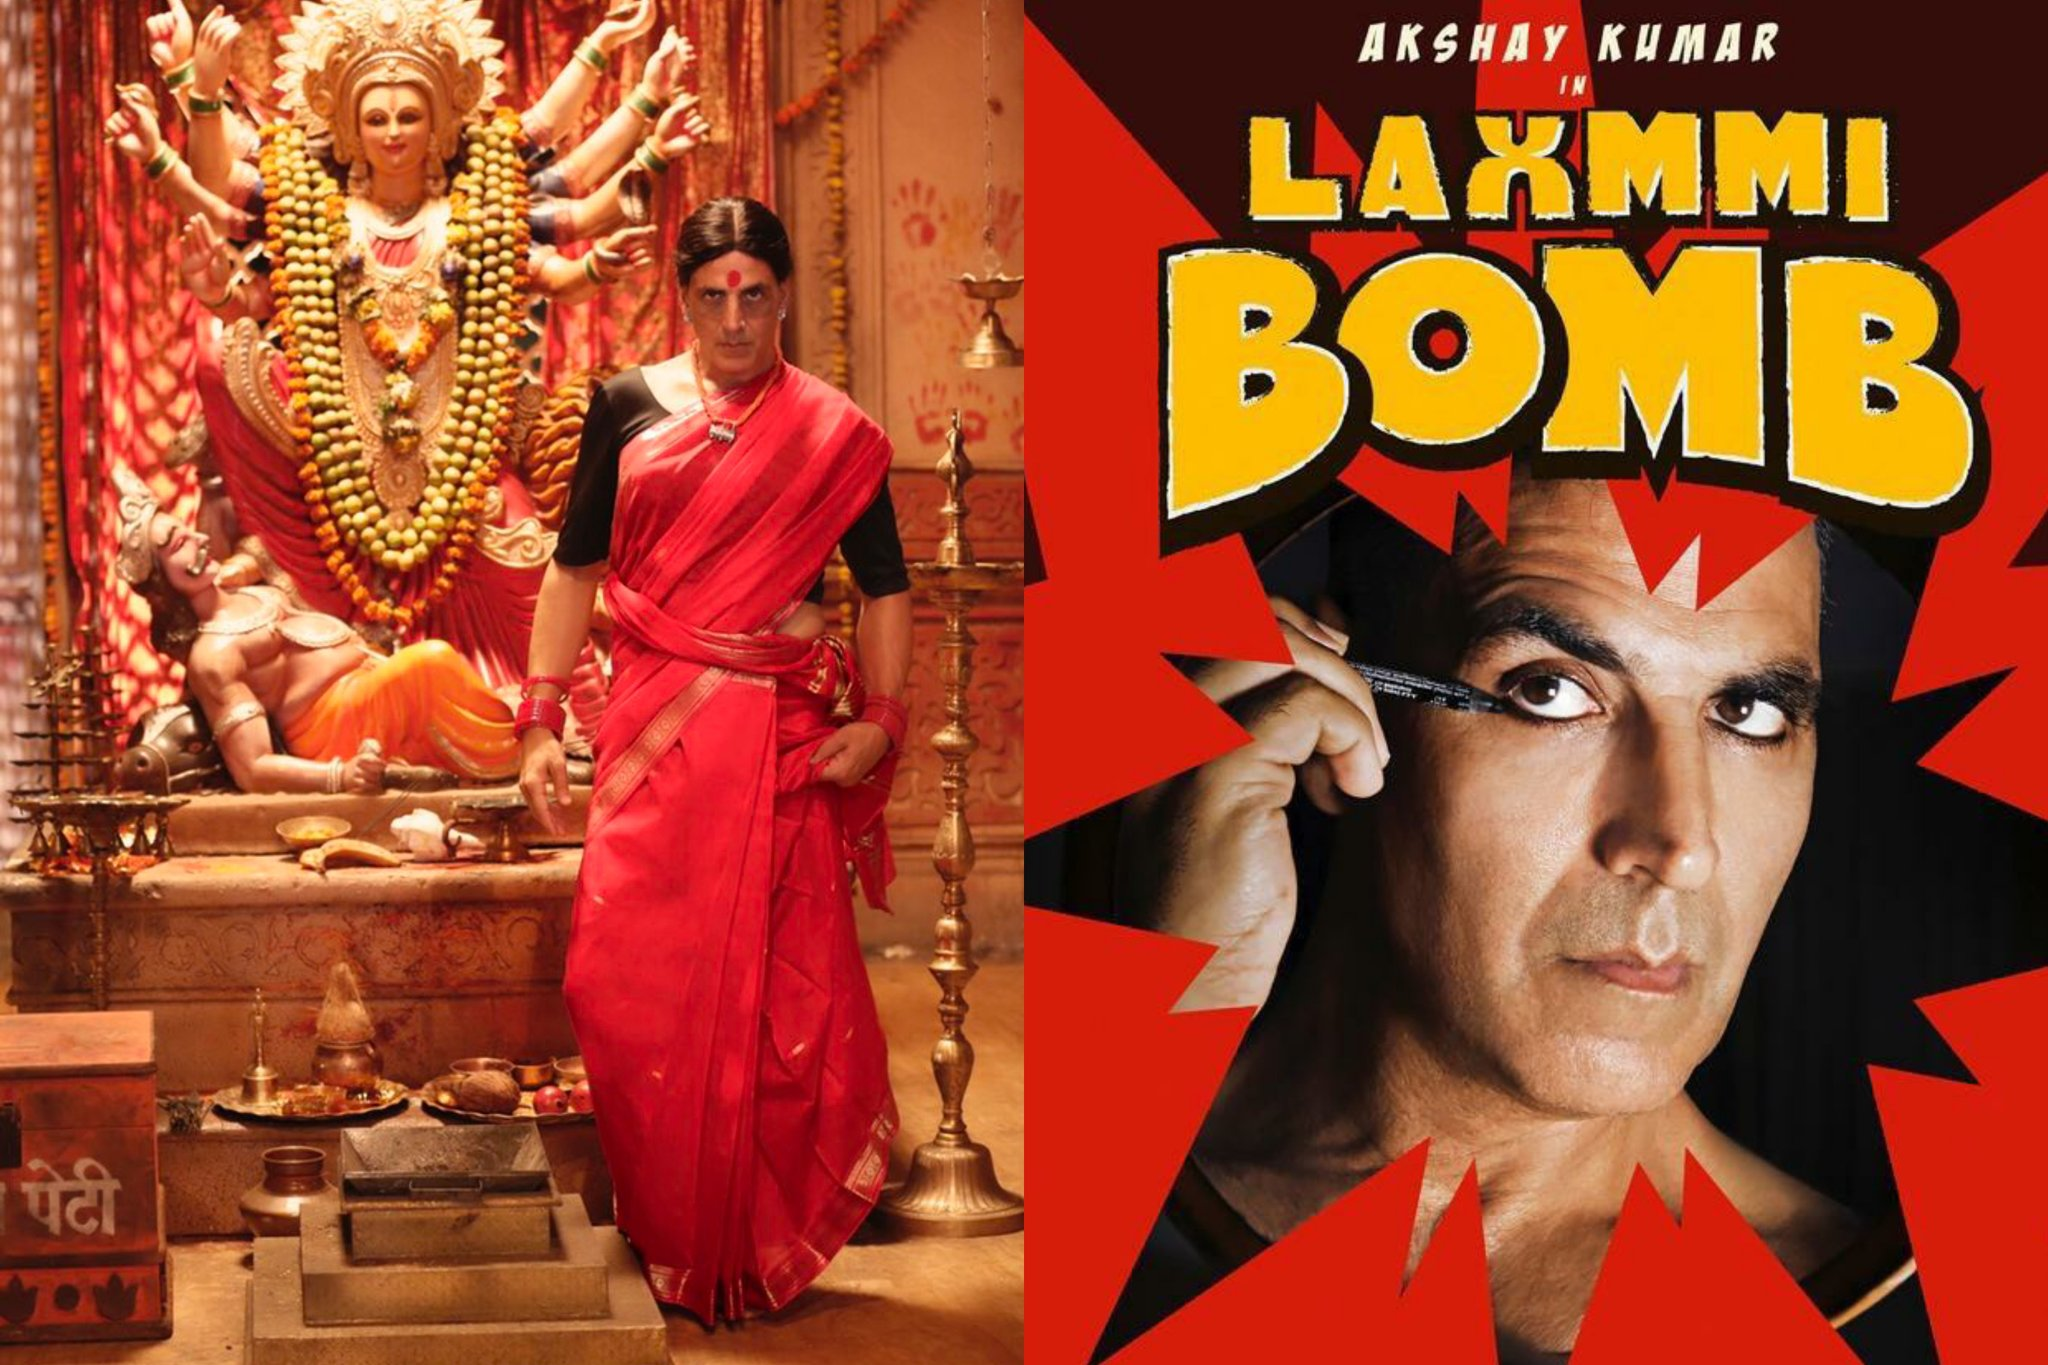 Laxmi bomb trailer released